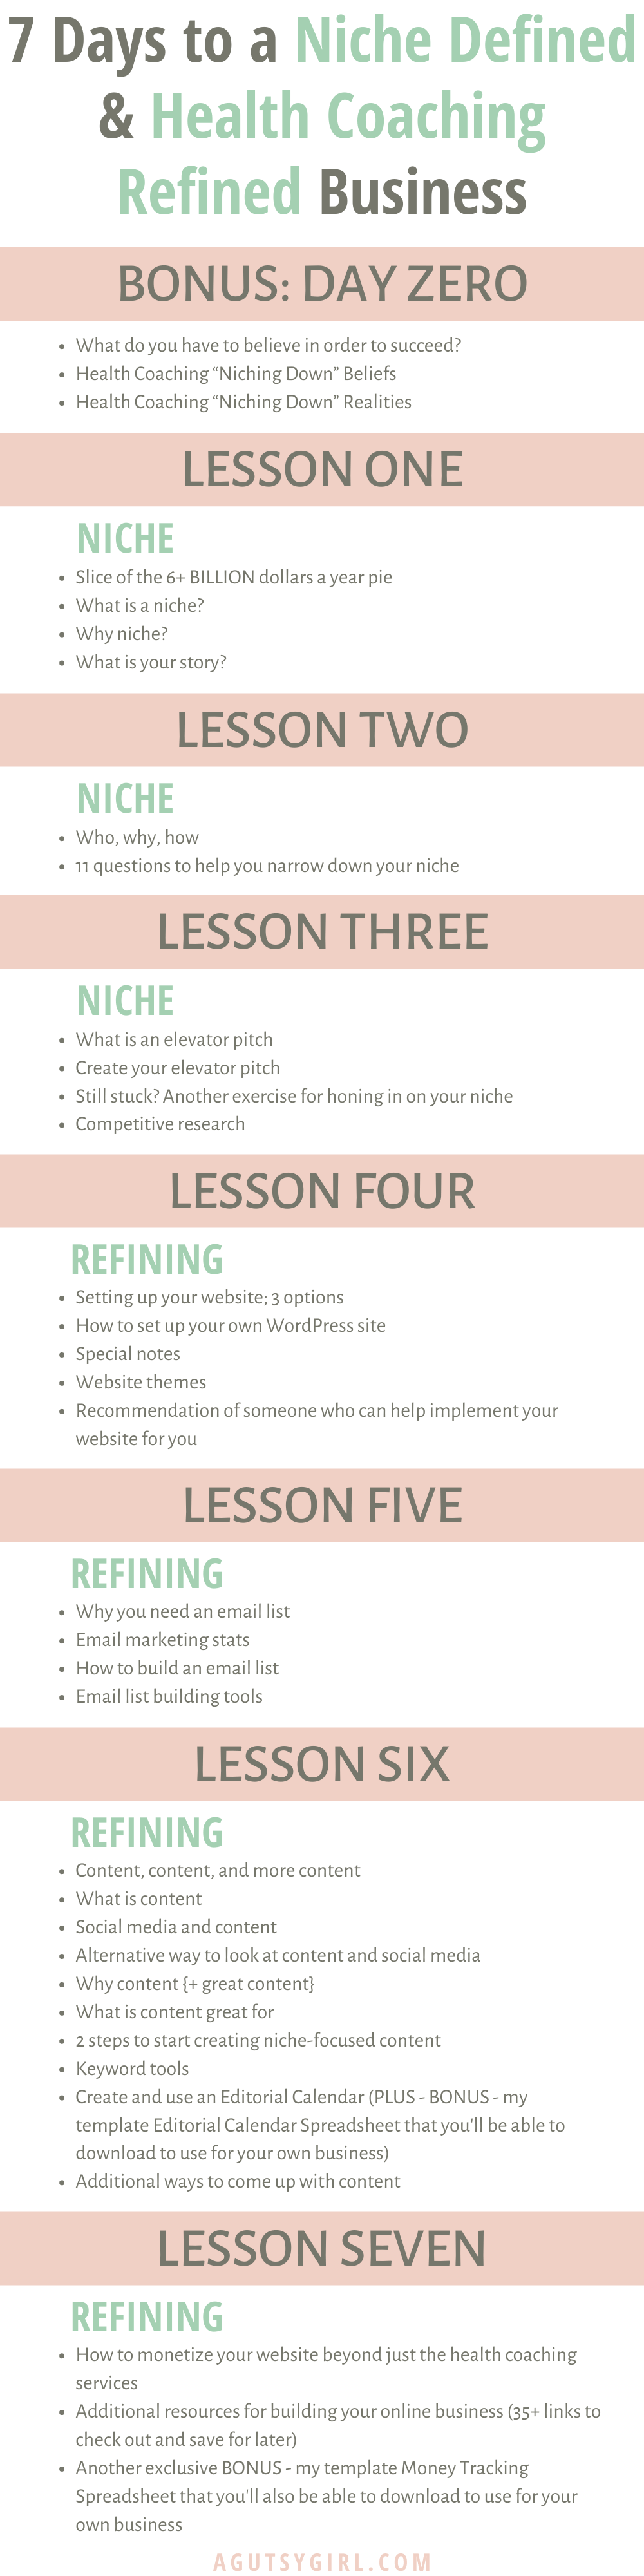 7 Days to a Niche Defined and Health Coaching Refined Business agutsygirl.com #healthcoaching #iin #onlinebusiness